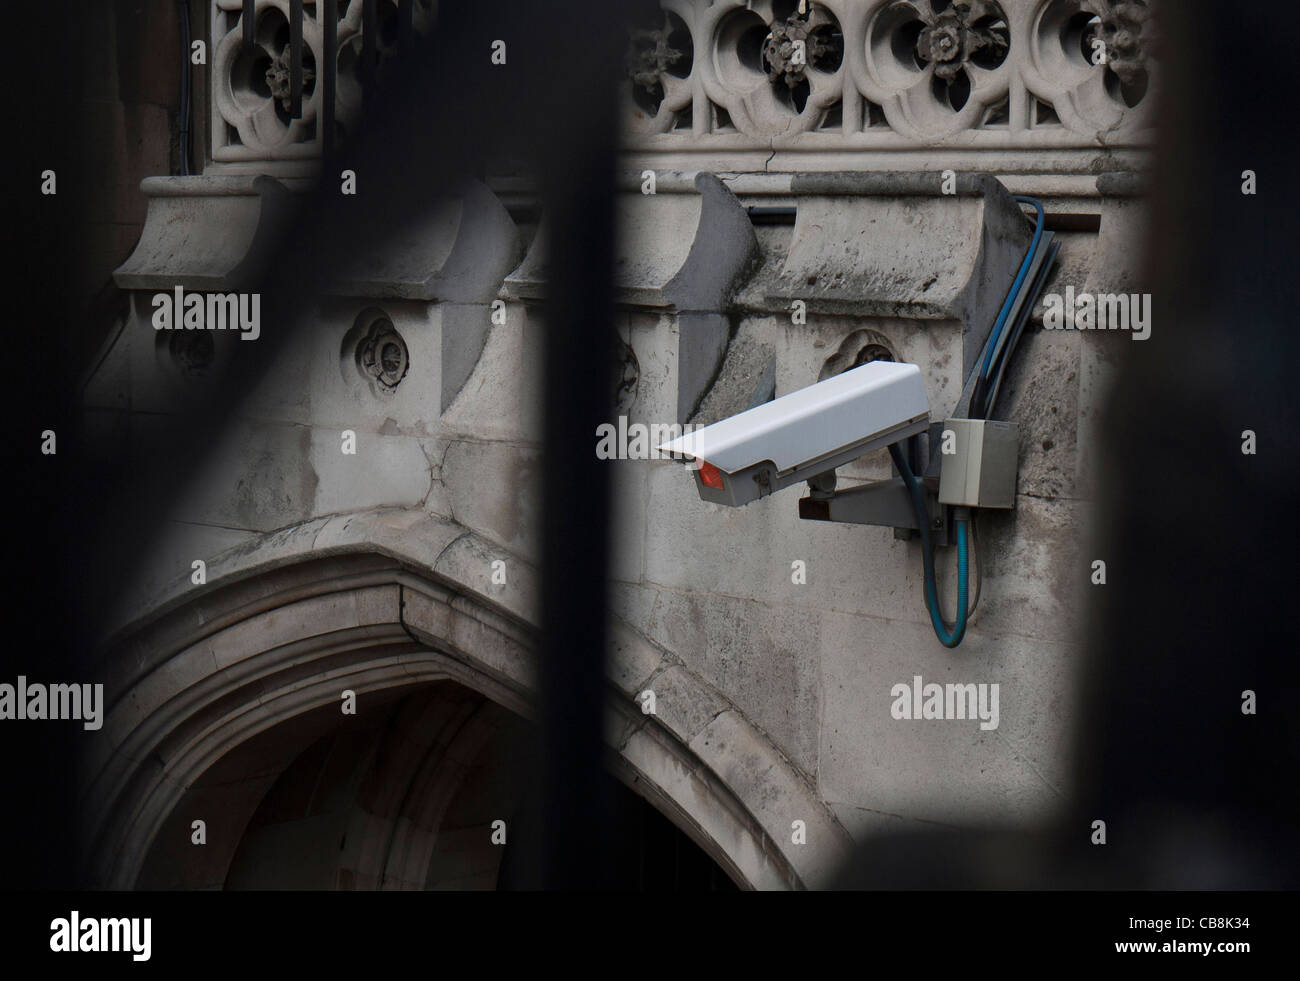 Infrared CCTV camera attached to historic building in London - Stock Image